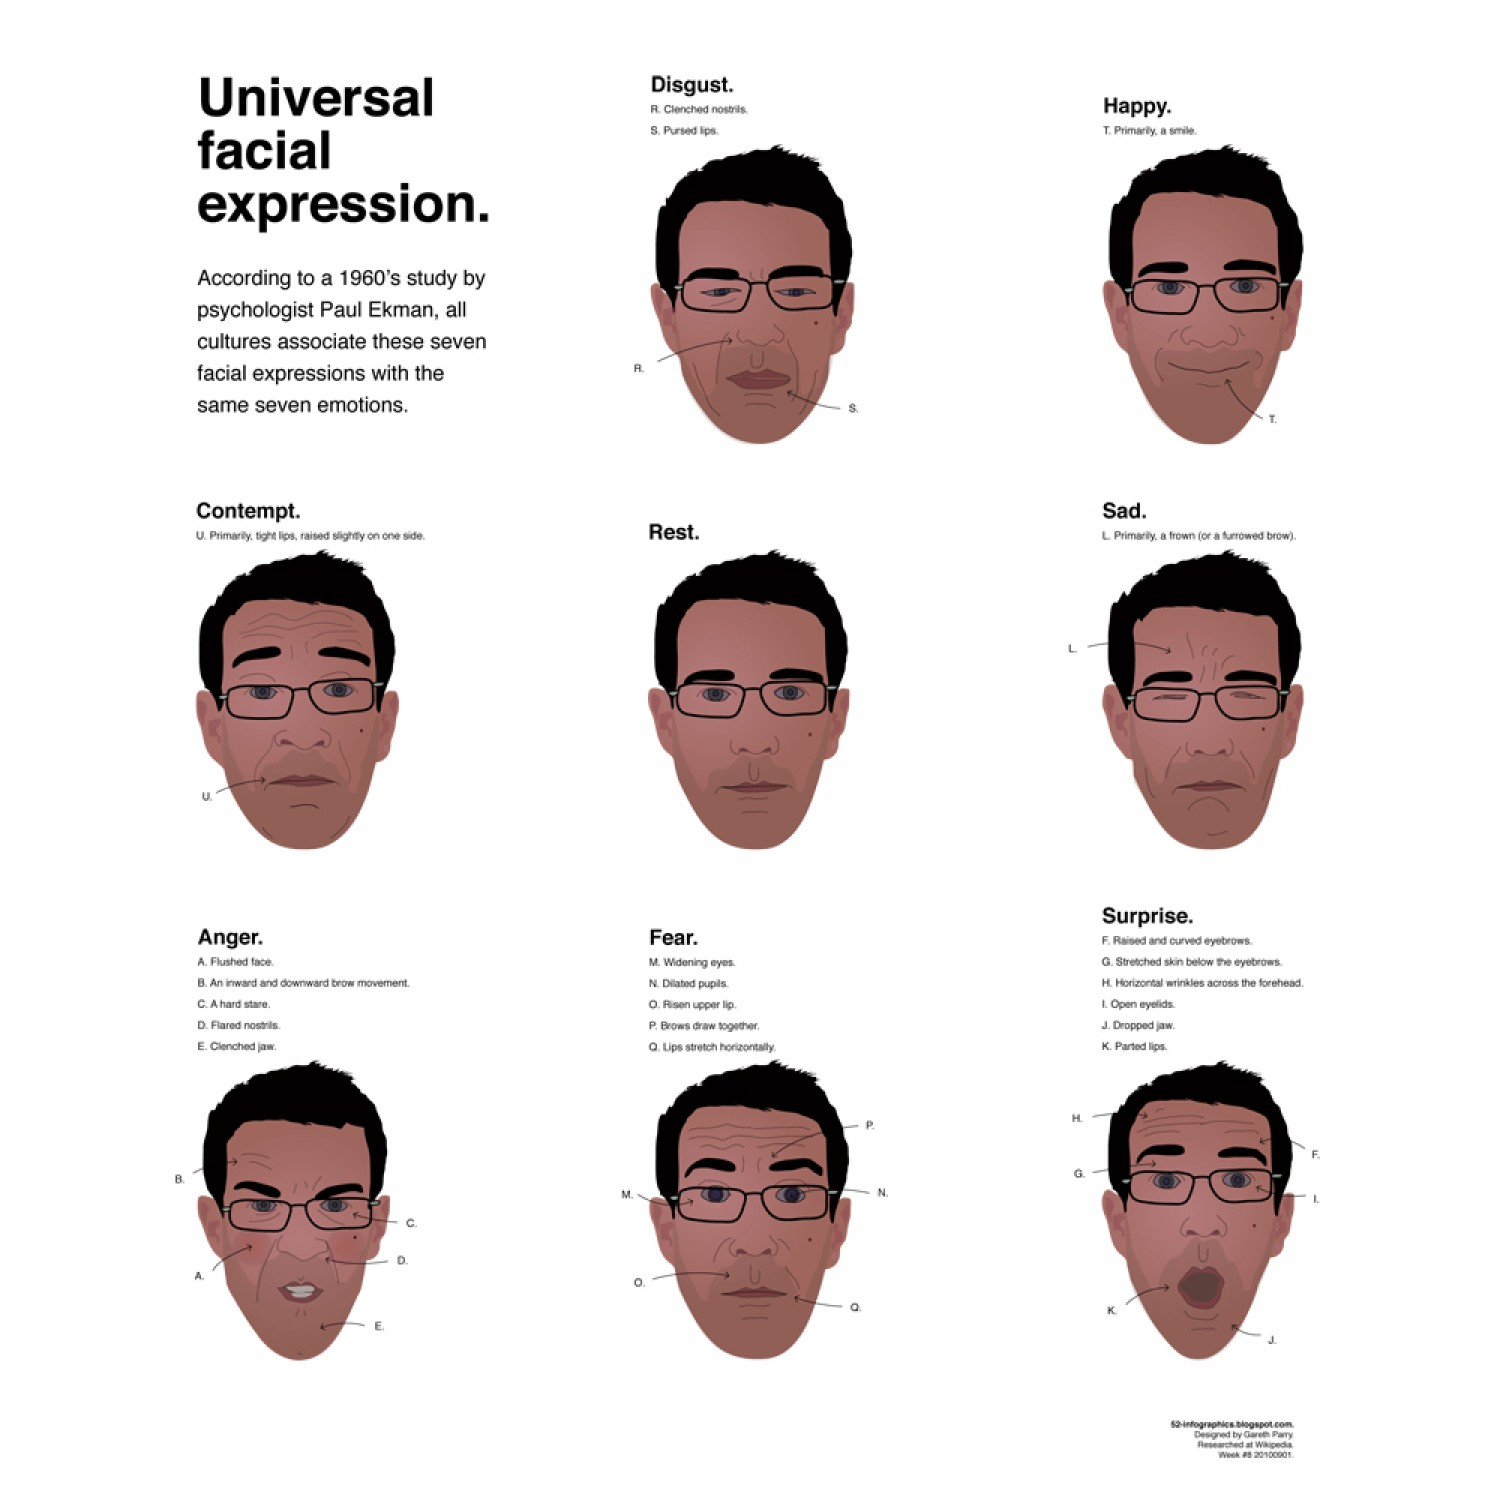 A drawing showing the 7 universal expressions: disgust, happy, rest, sad, anger, fear, surprise and contempt